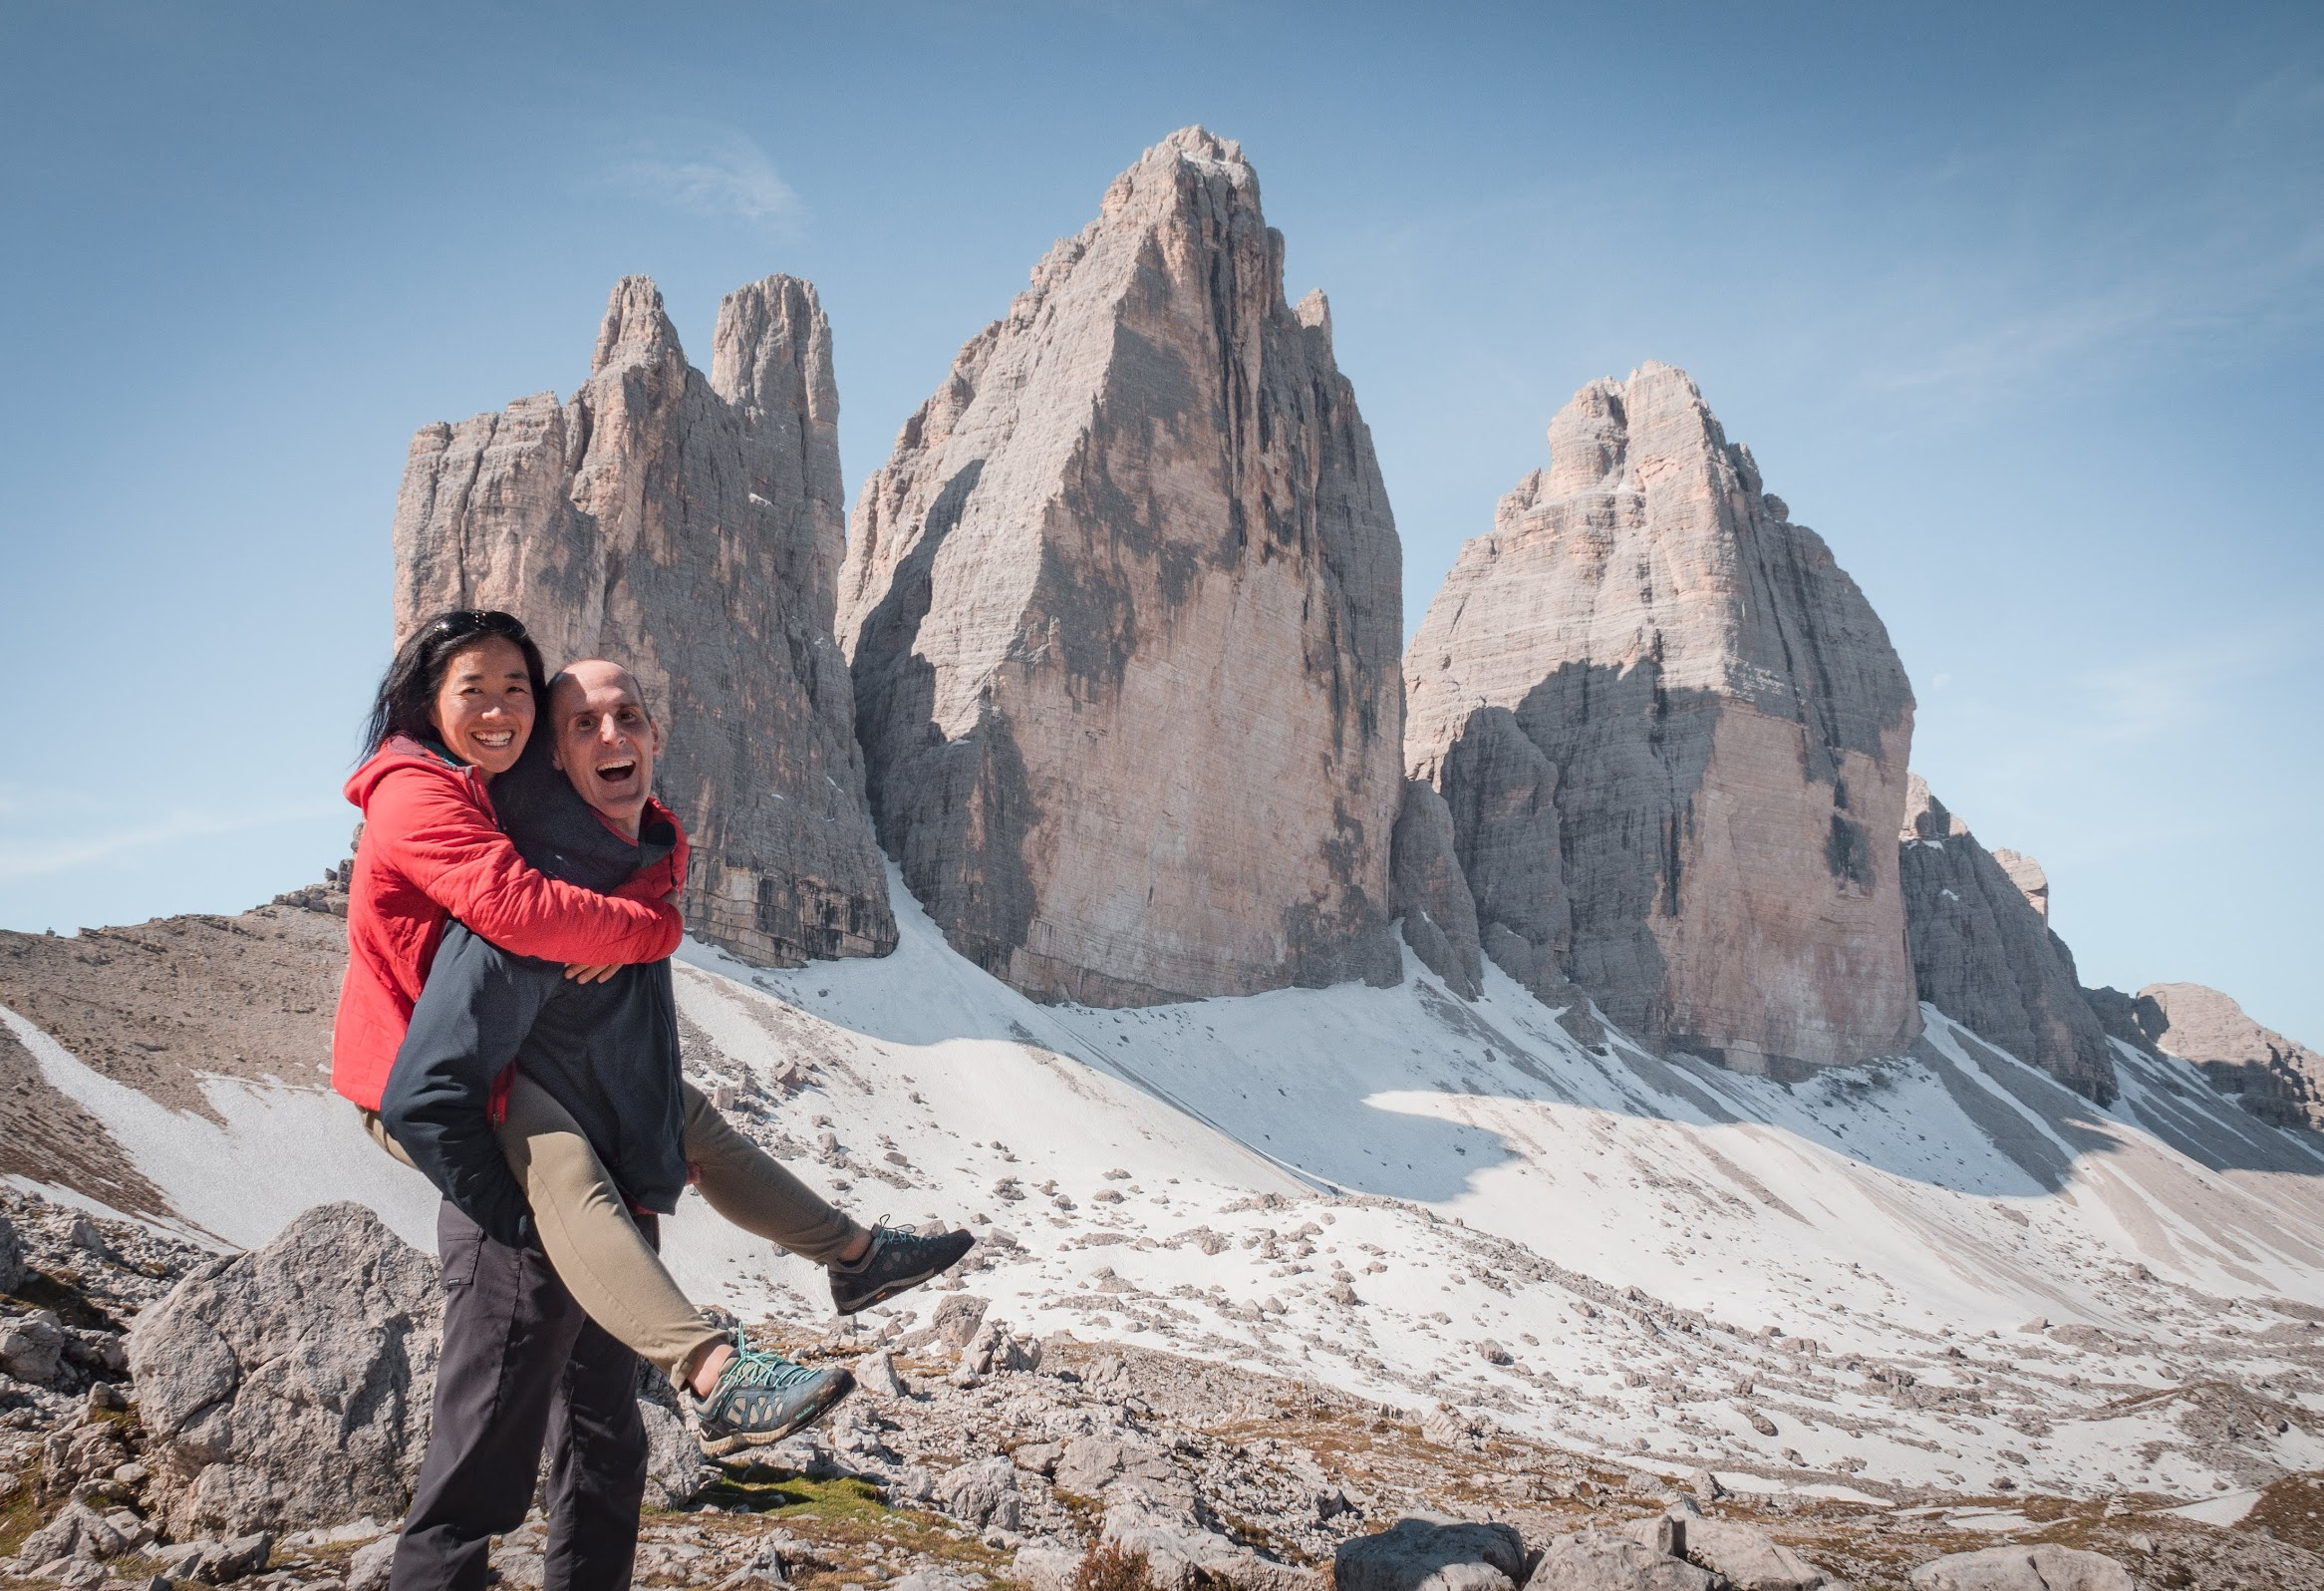 Tres Cime, one of the best scenic day hikes in the Dolomites